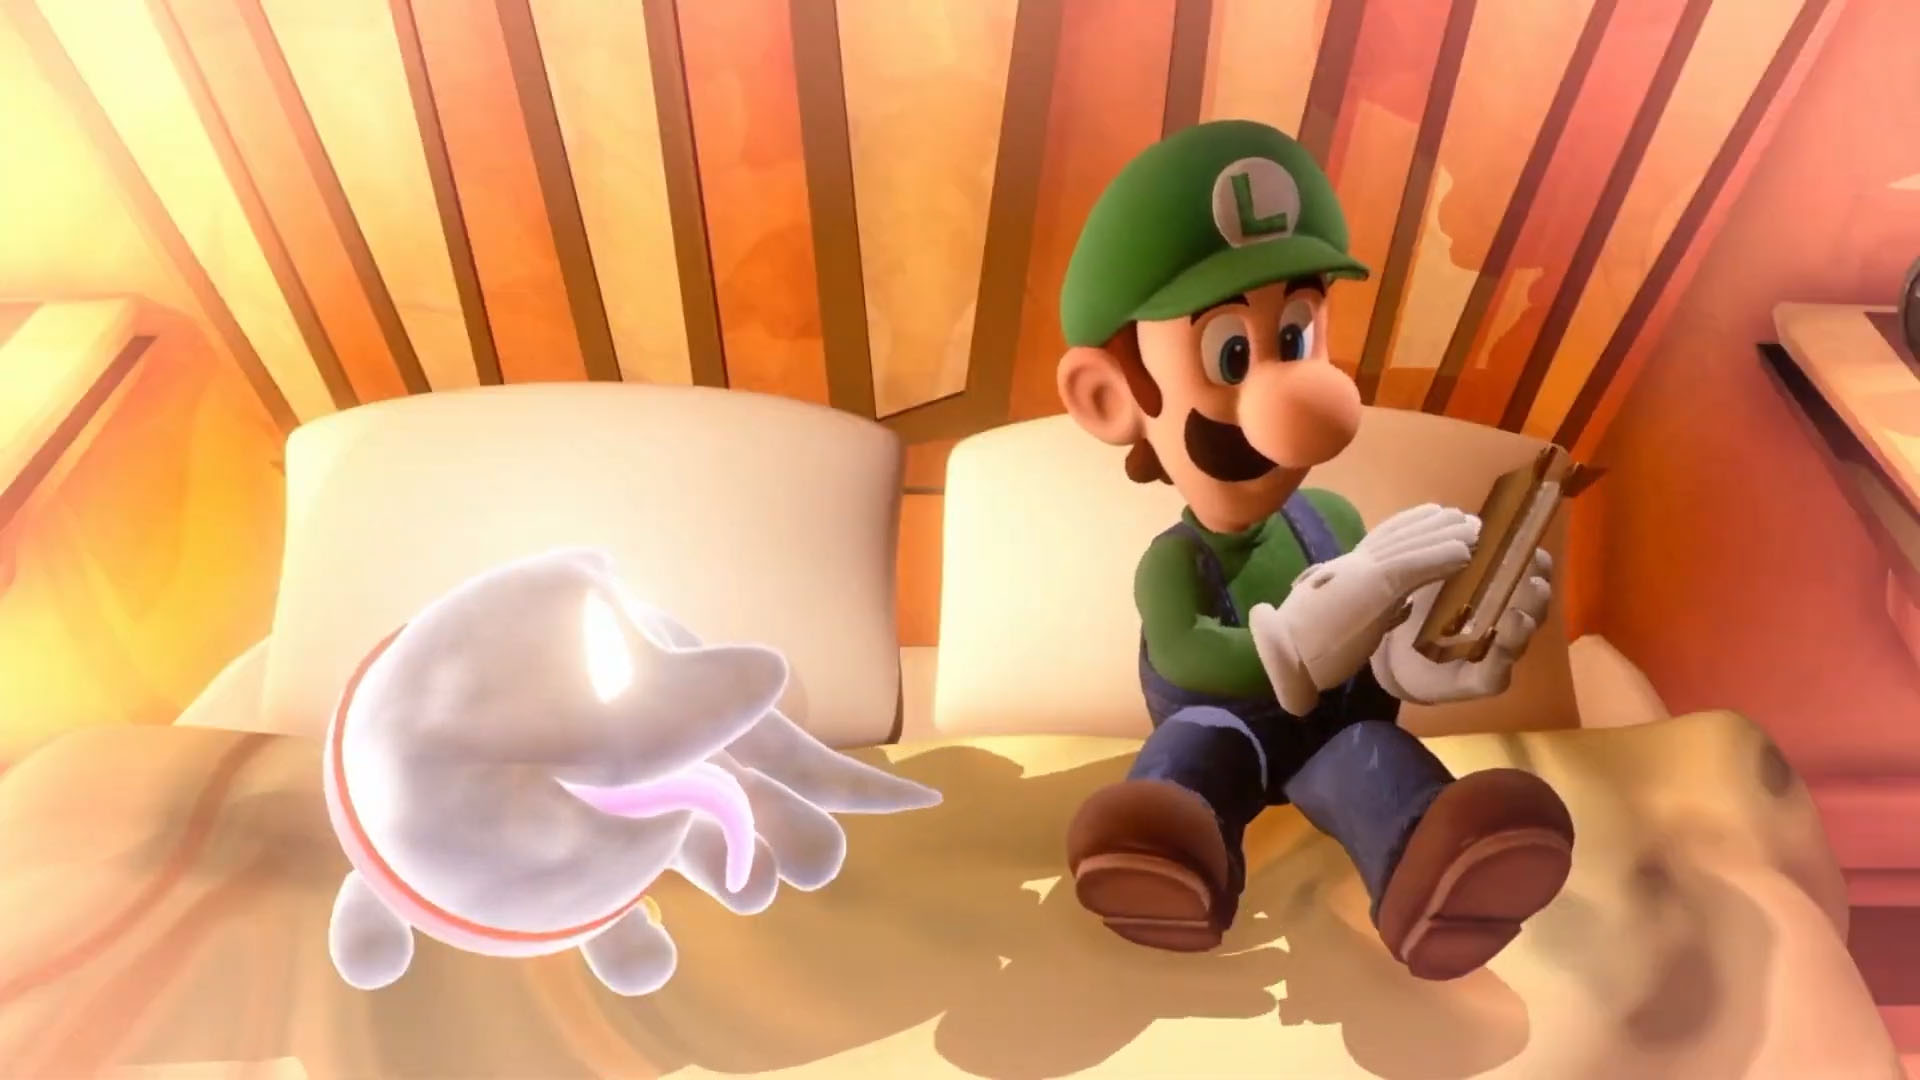 Nintendos E3 Direct Scares Up More Luigis Mansion 3